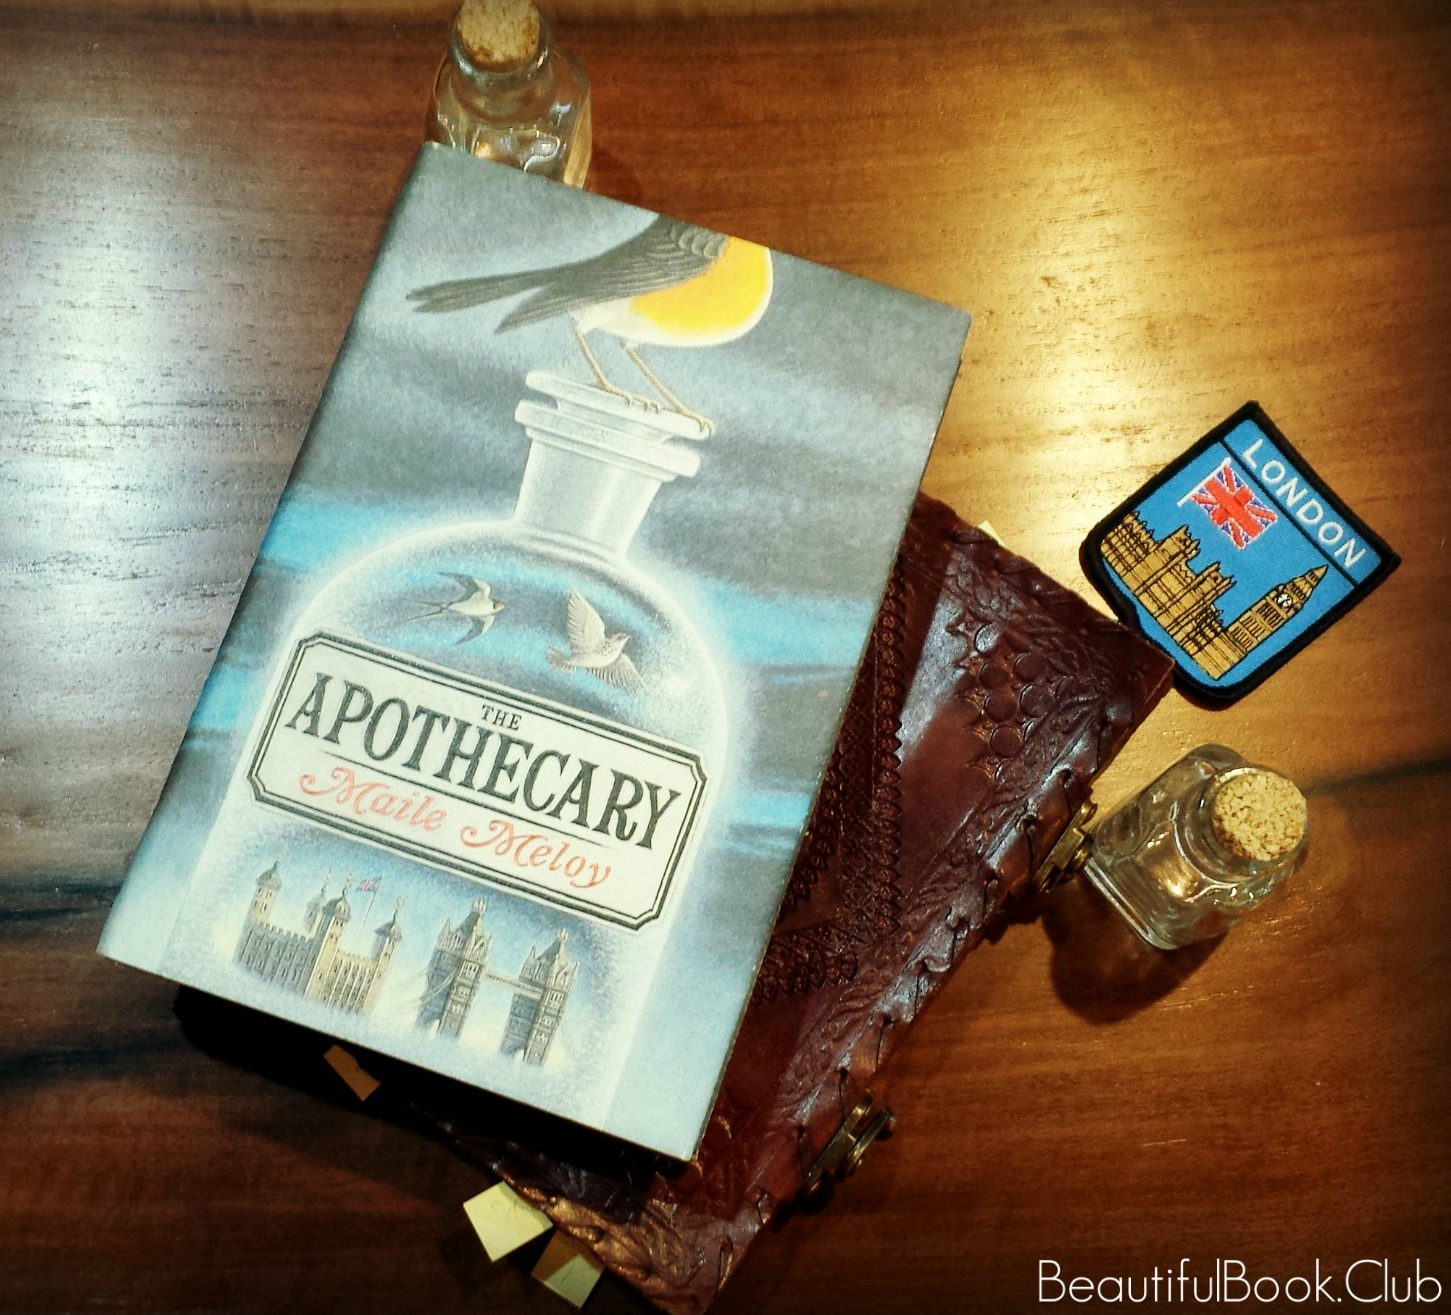 The Apothecary front cover with little trinkets